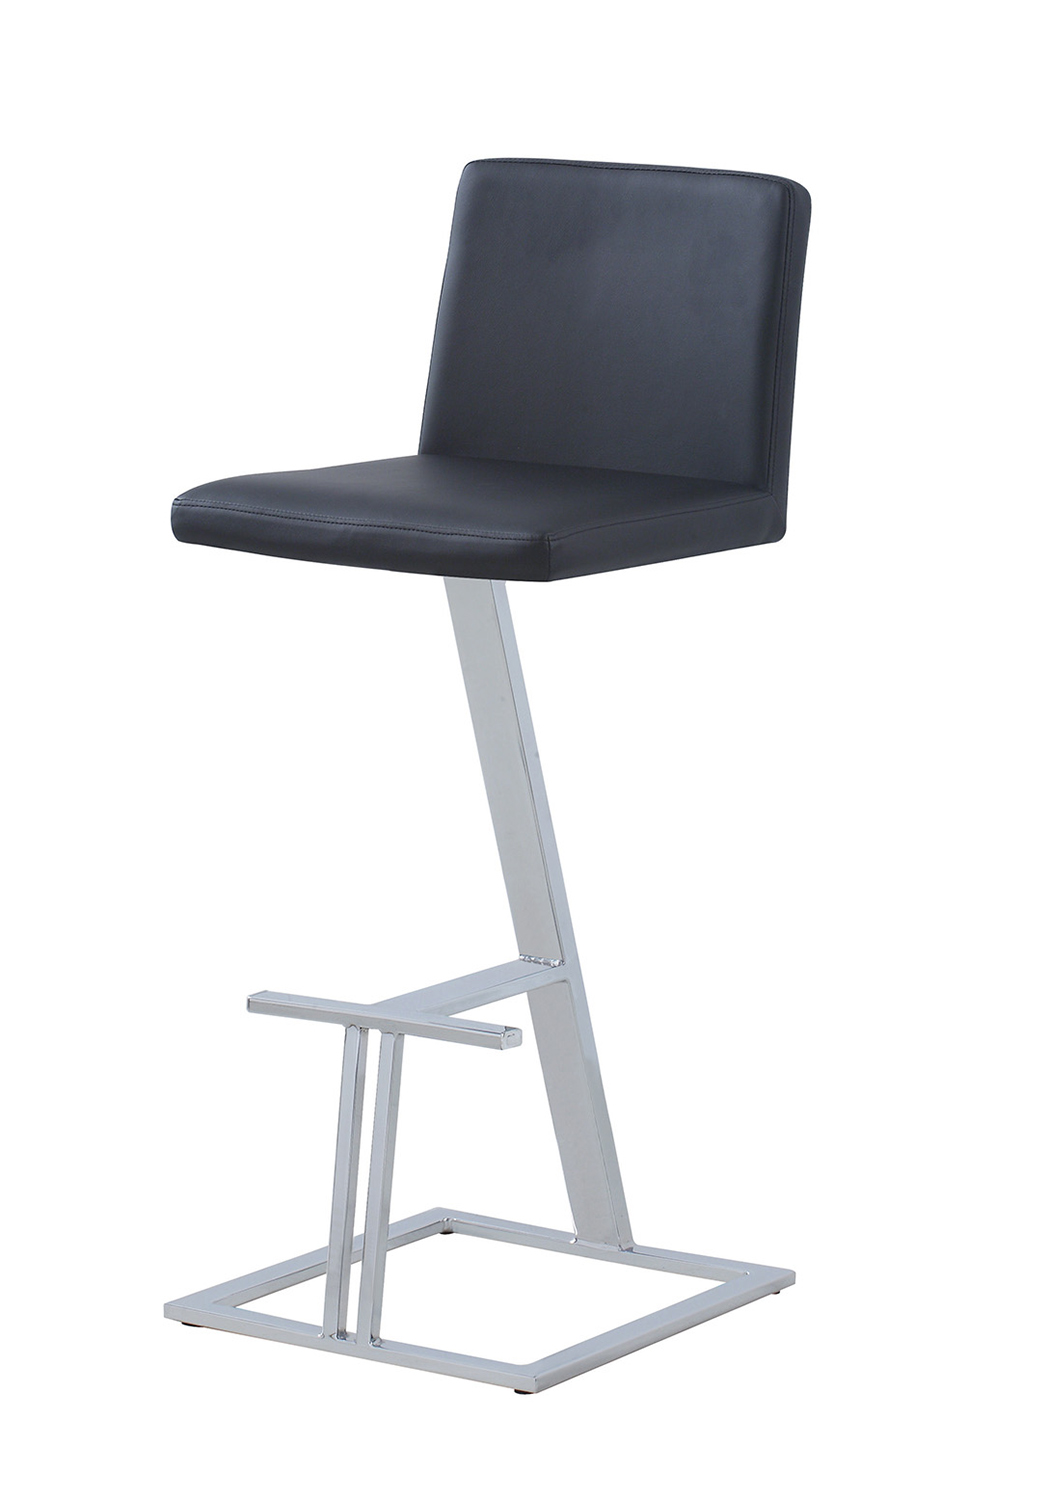 Coaster 104878 Bar Stool - Black/Chrome